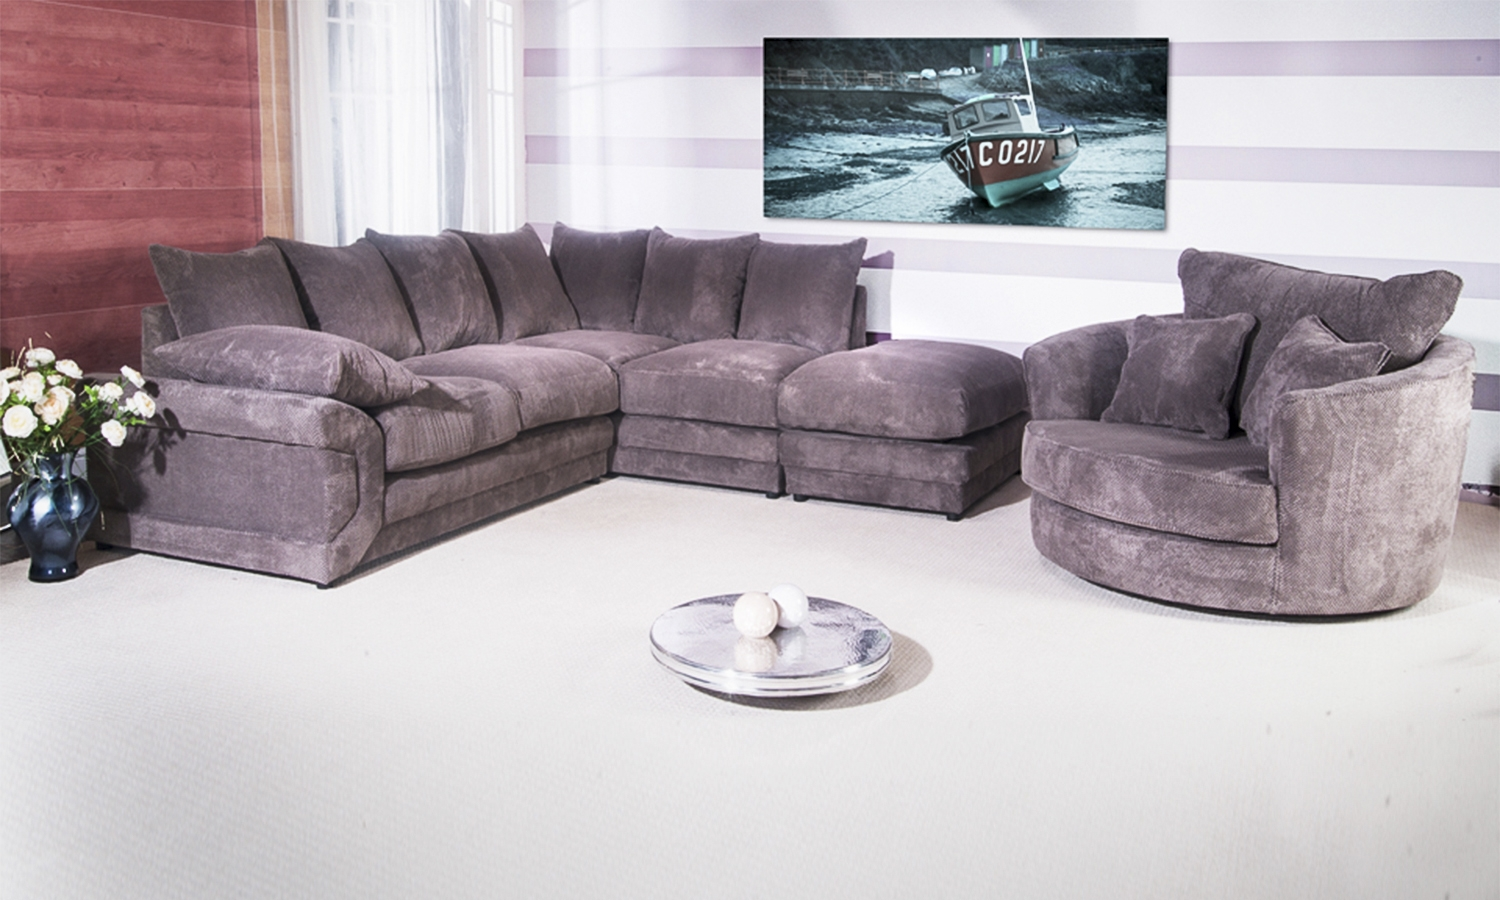 Corner Sofa With Swivel Chair Best Selling Ur7 Umpsa 78 Sofas With Sofa With Swivel Chair (Image 9 of 15)